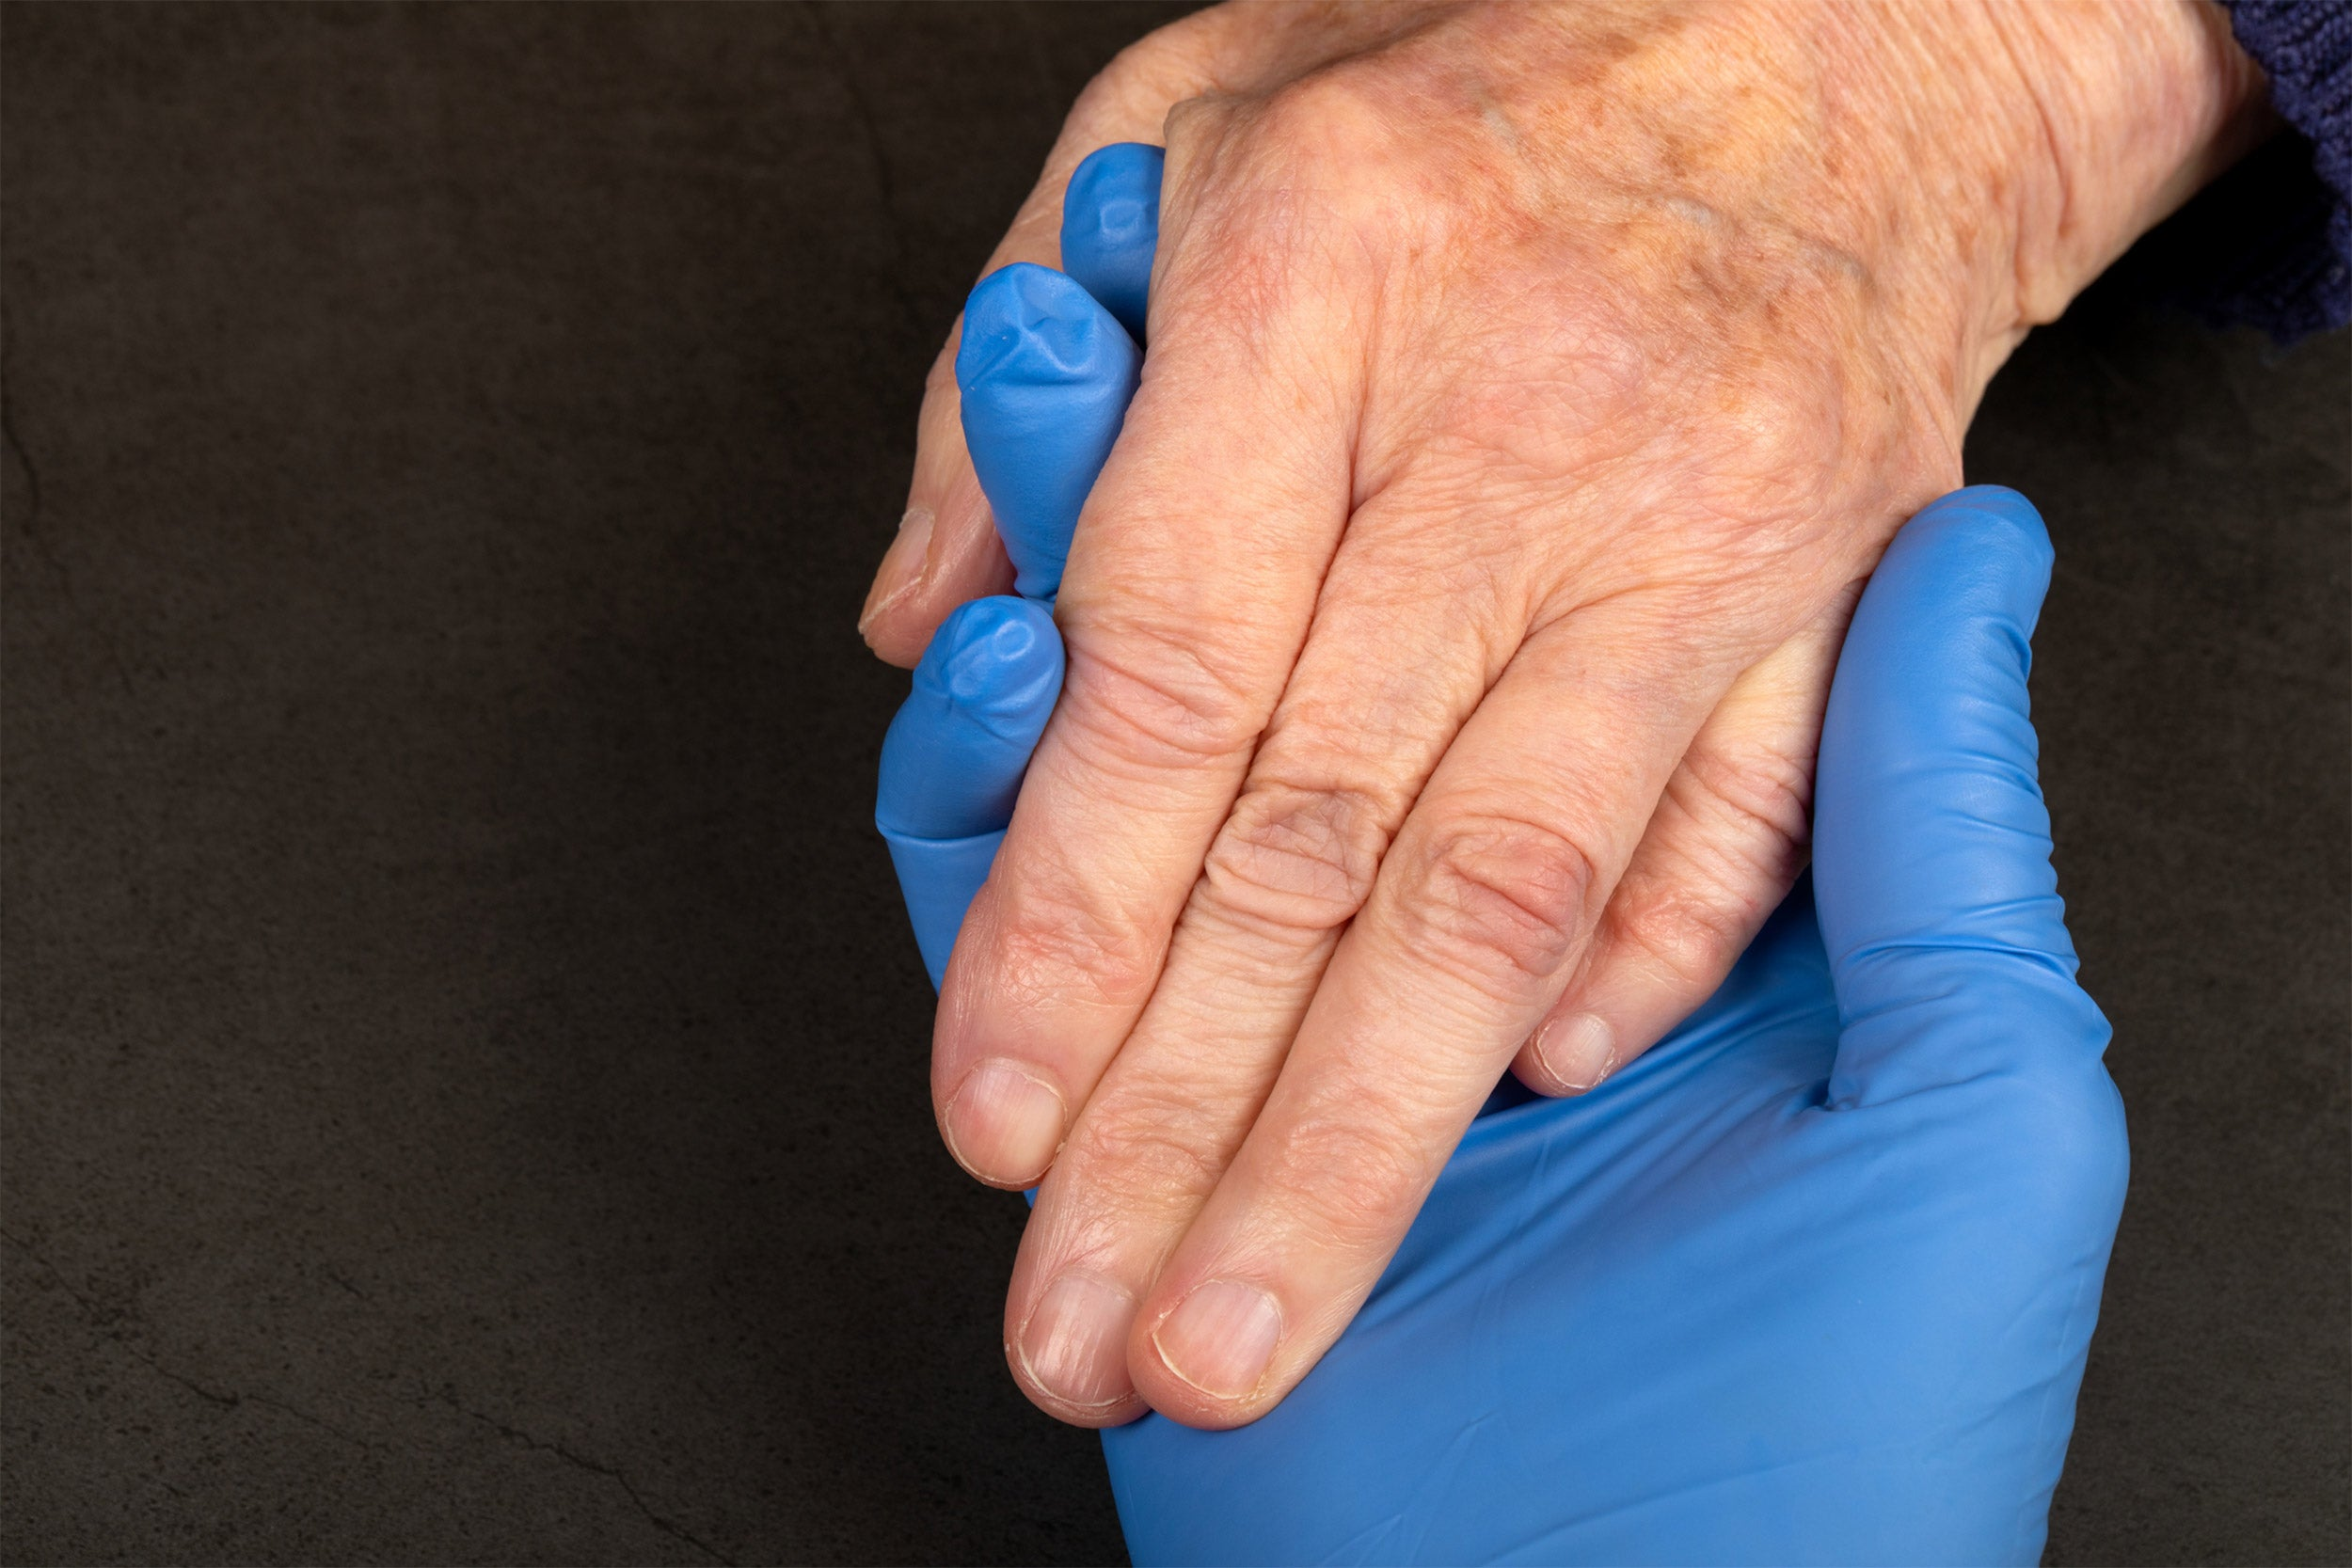 Caregiver holding elderly patients hand at home.